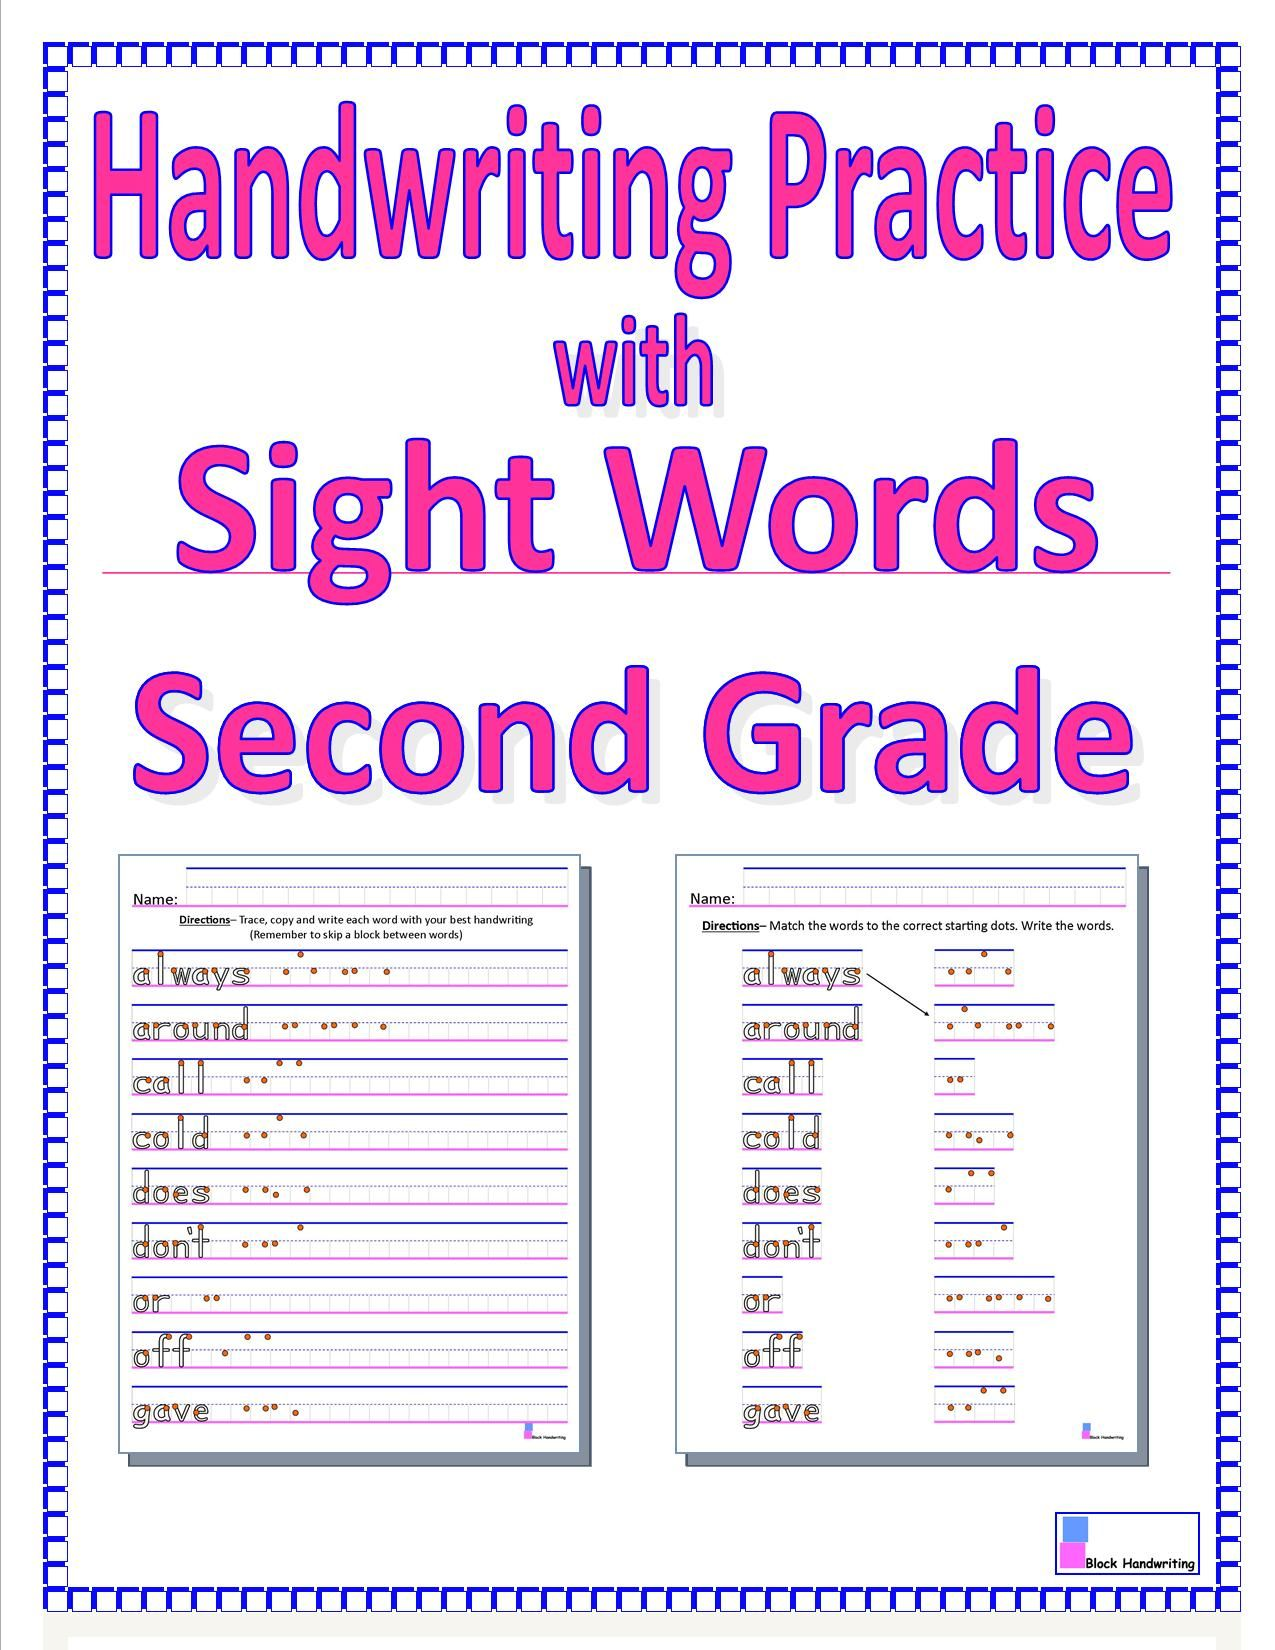 small resolution of 2nd grade sight words   Handwriting Practice with Second Grade Sight Words    Writing practice worksheets